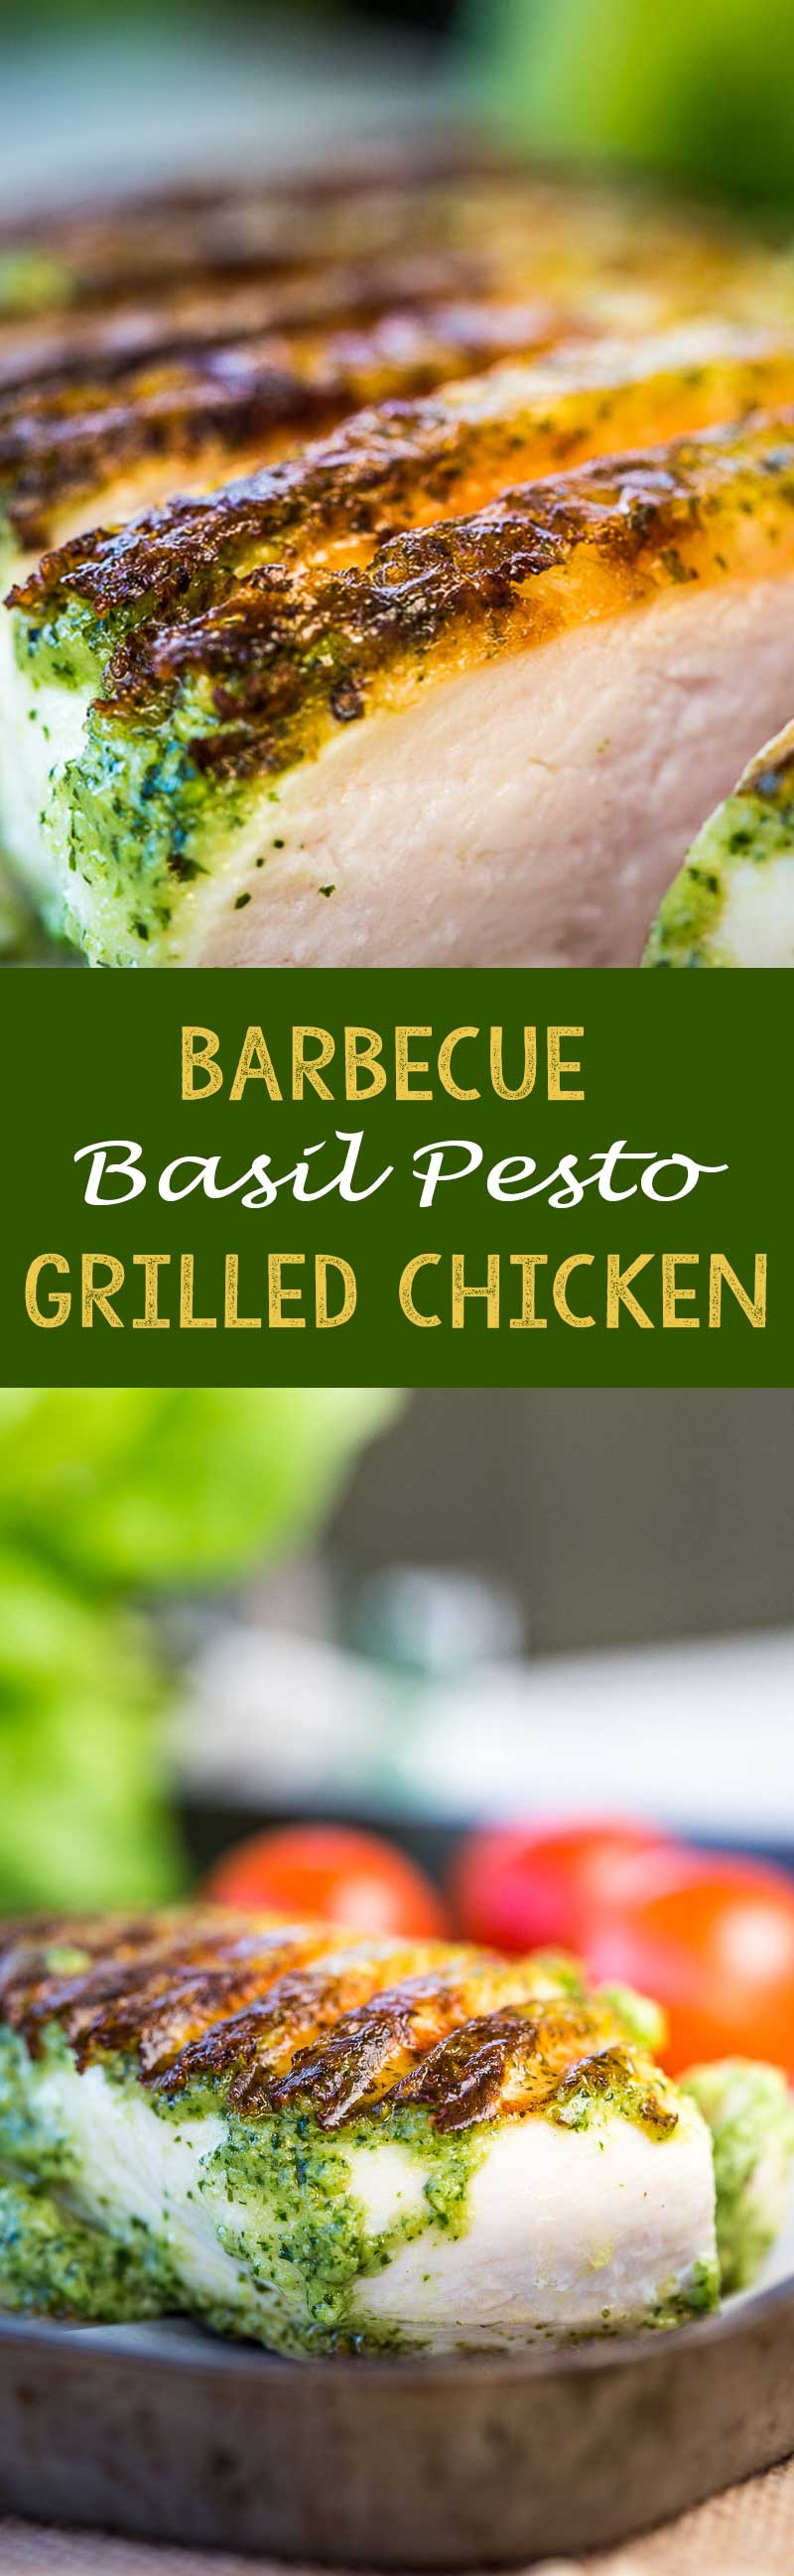 Barbecue pesto chicken grilled on the grill